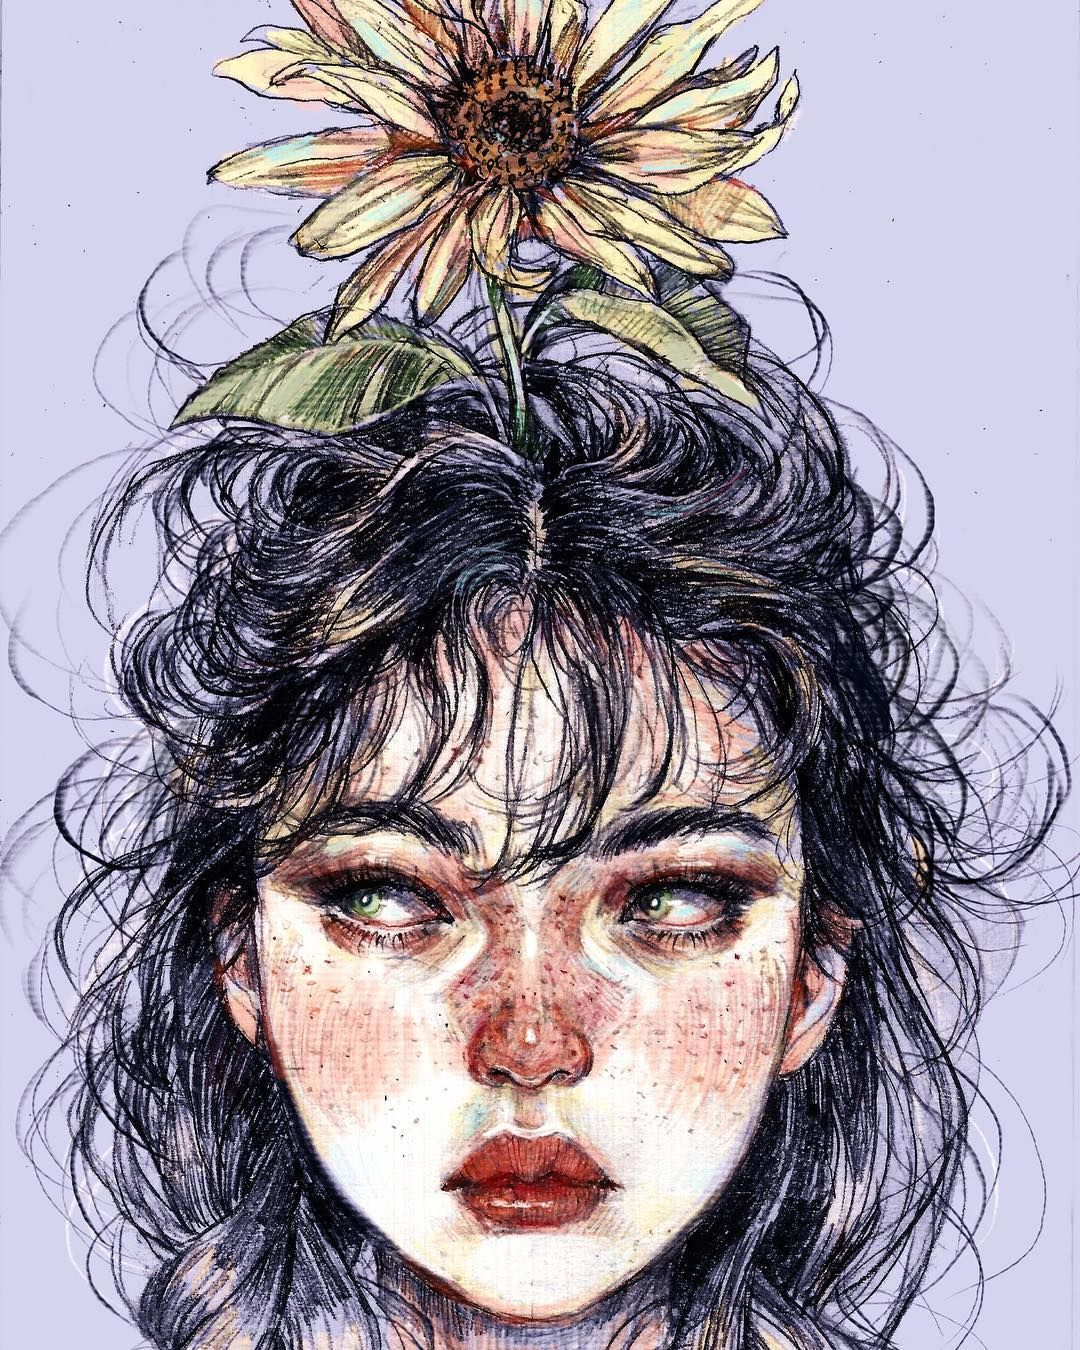 """Walter's Mom on Instagram: """"Tried some new things today. Didn't hate it. 🌻 . . #dailysketch #dailydrawing #pencildrawing #portrait #illustration #aesthetic #🌻 #freckles"""""""